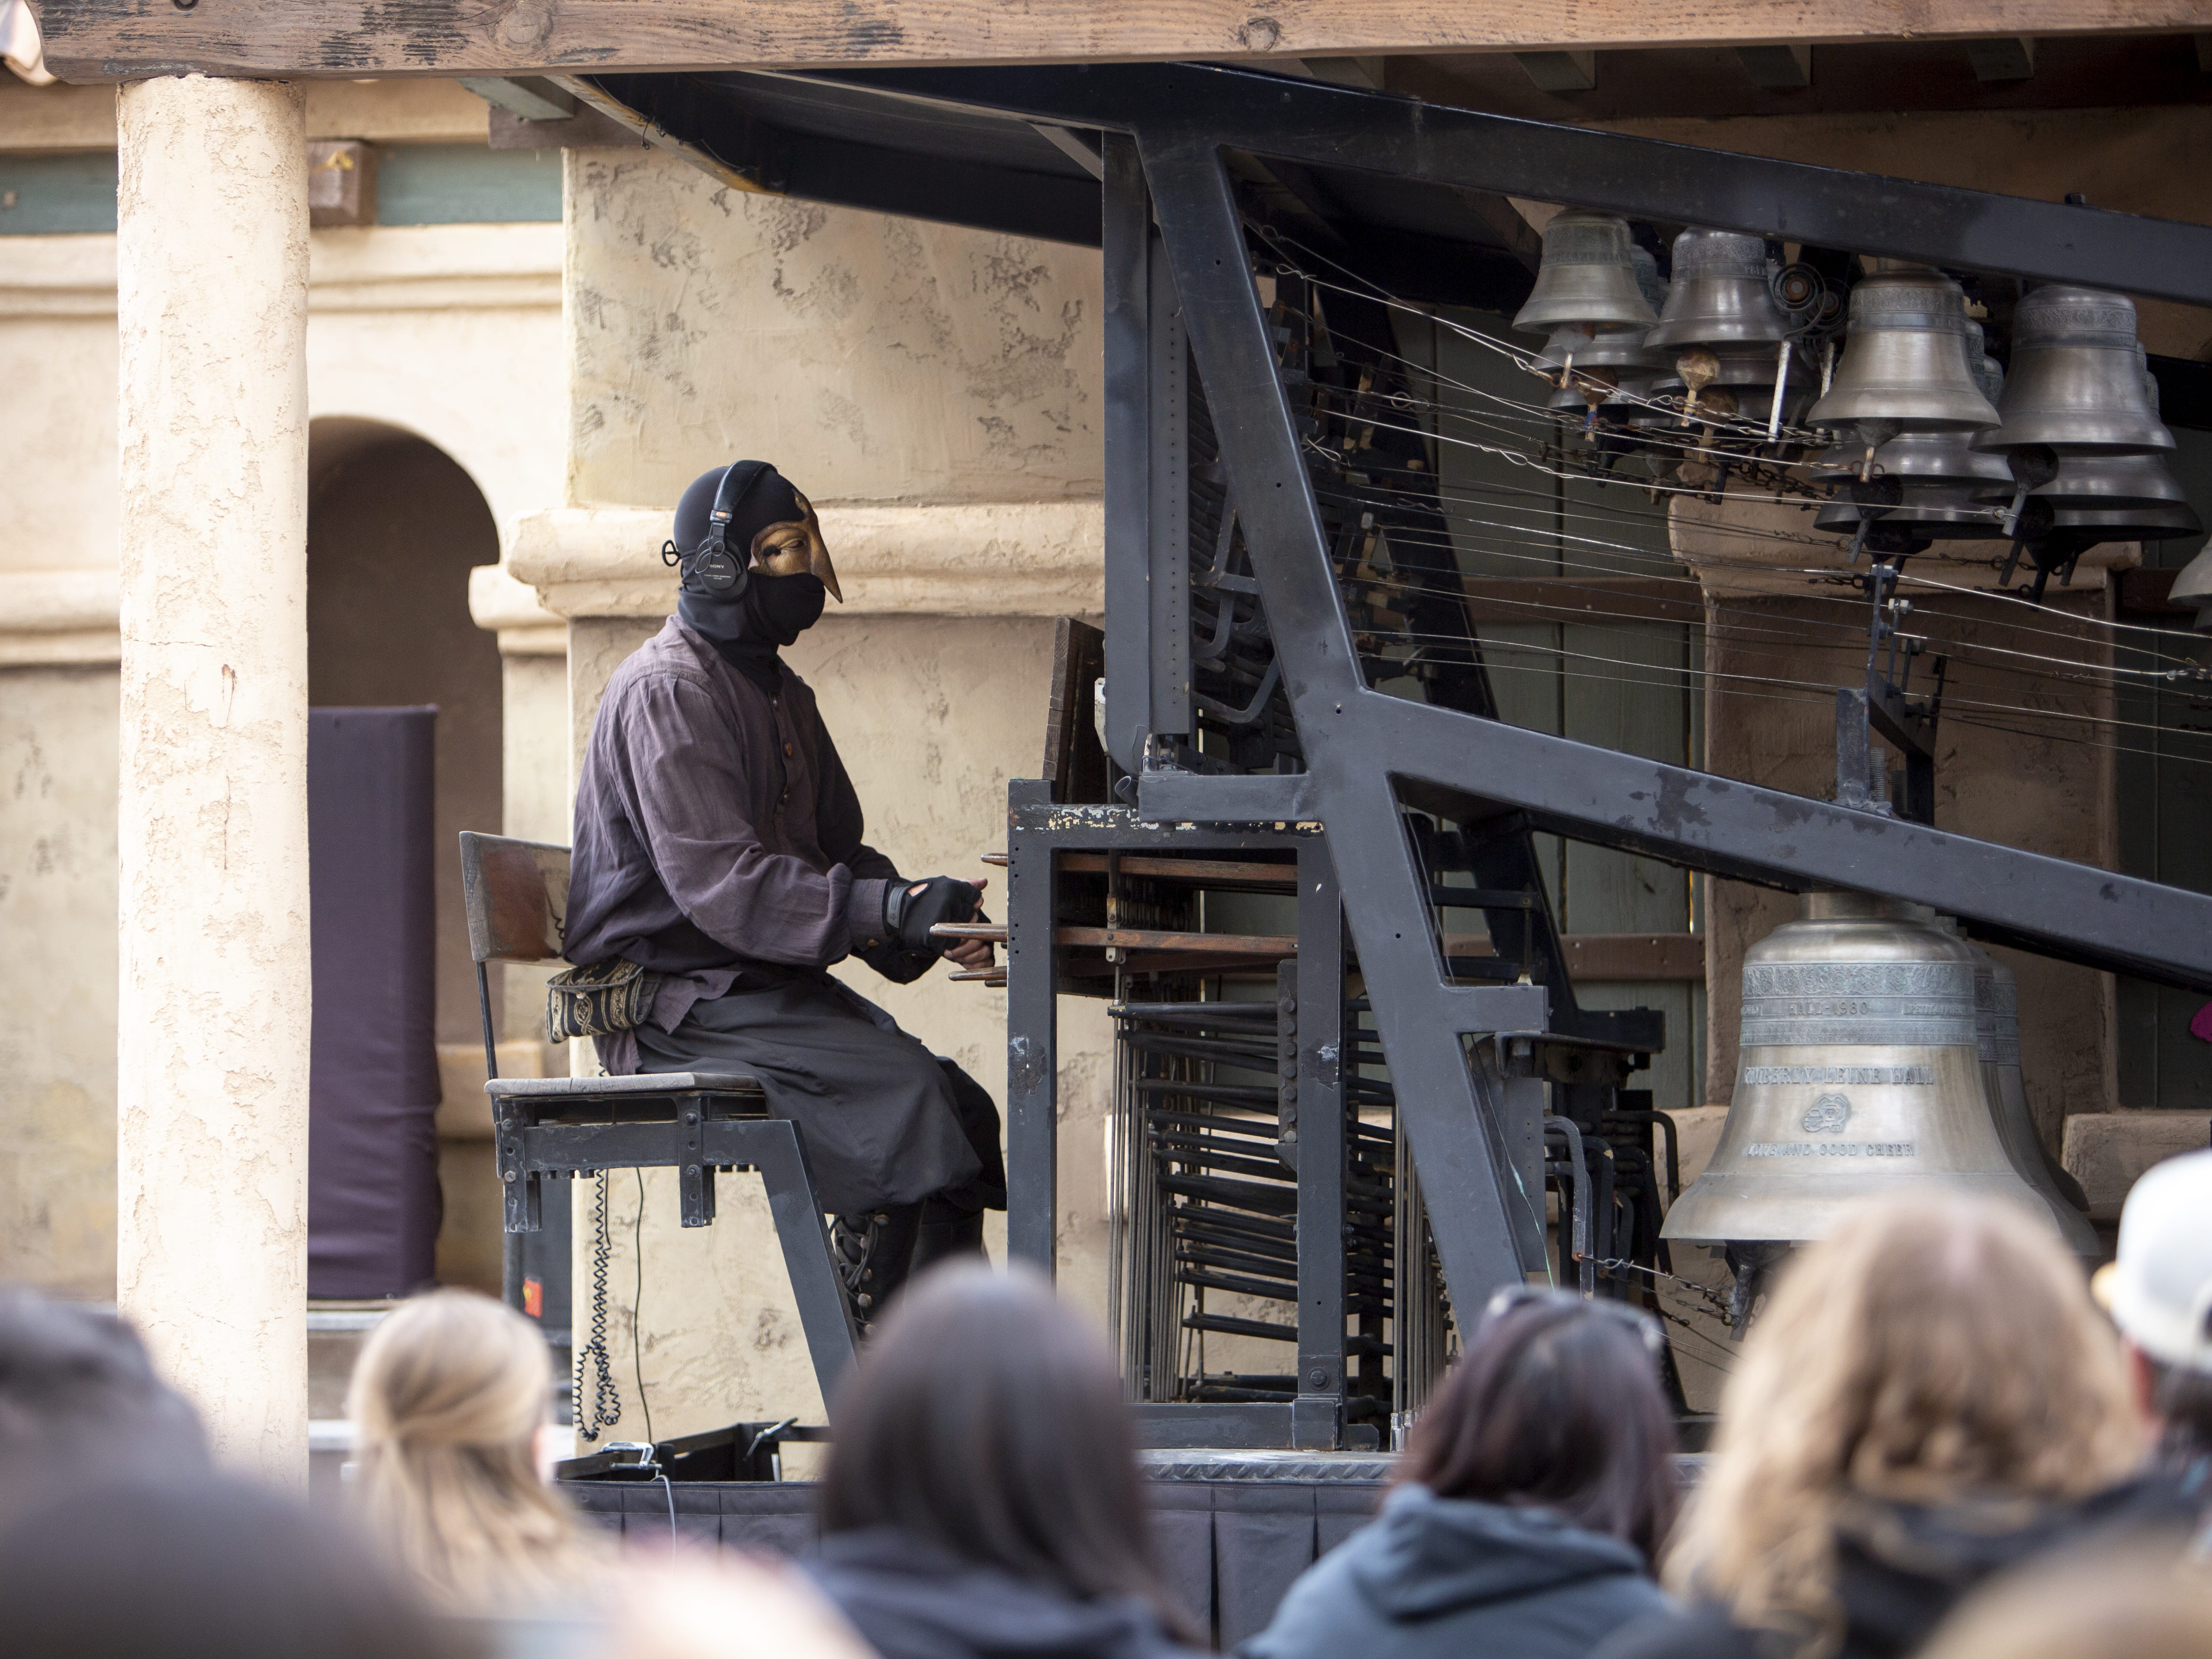 Frank DellaPenna performs on the carillon, an instrument made of at least 23 cast bronze bells, at the Arizona Renaissance Festival 2019 on Feb. 9, 2019 in Gold Canyon, Ariz.